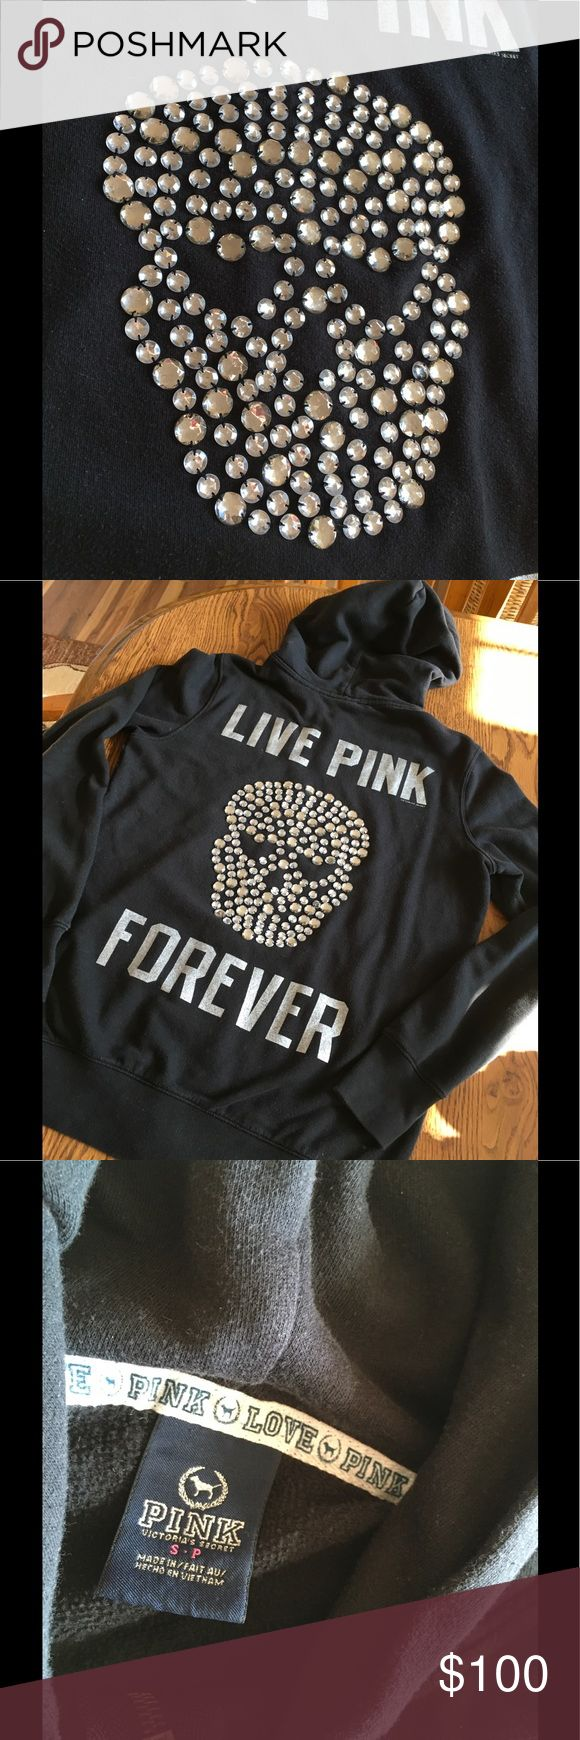 Pink Special Edition Skull hoodie bling small Black zip up hoodie with silver dog on front, live pink forever on back, clear large rhinestones in the shape of a skull on back.  No holes, or discoloration, slight piling from wear, not noticeable. Worn only a few times. EUC PINK Victoria's Secret Tops Sweatshirts & Hoodies